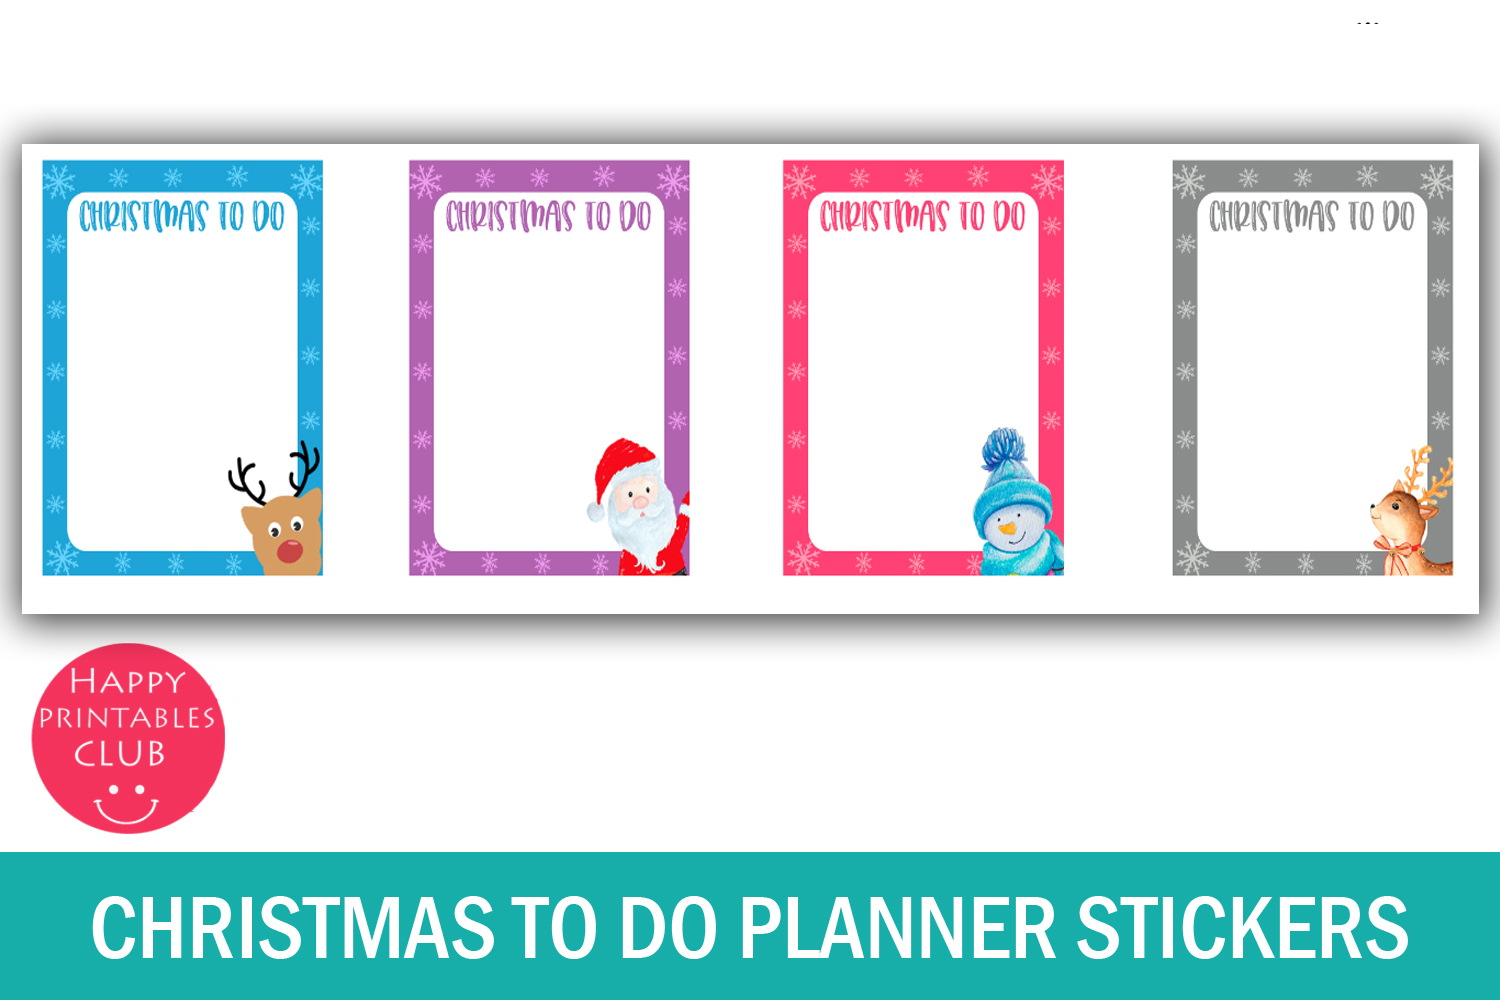 Christmas To Do List Planner Stickers-Christmas Stickers example image 2